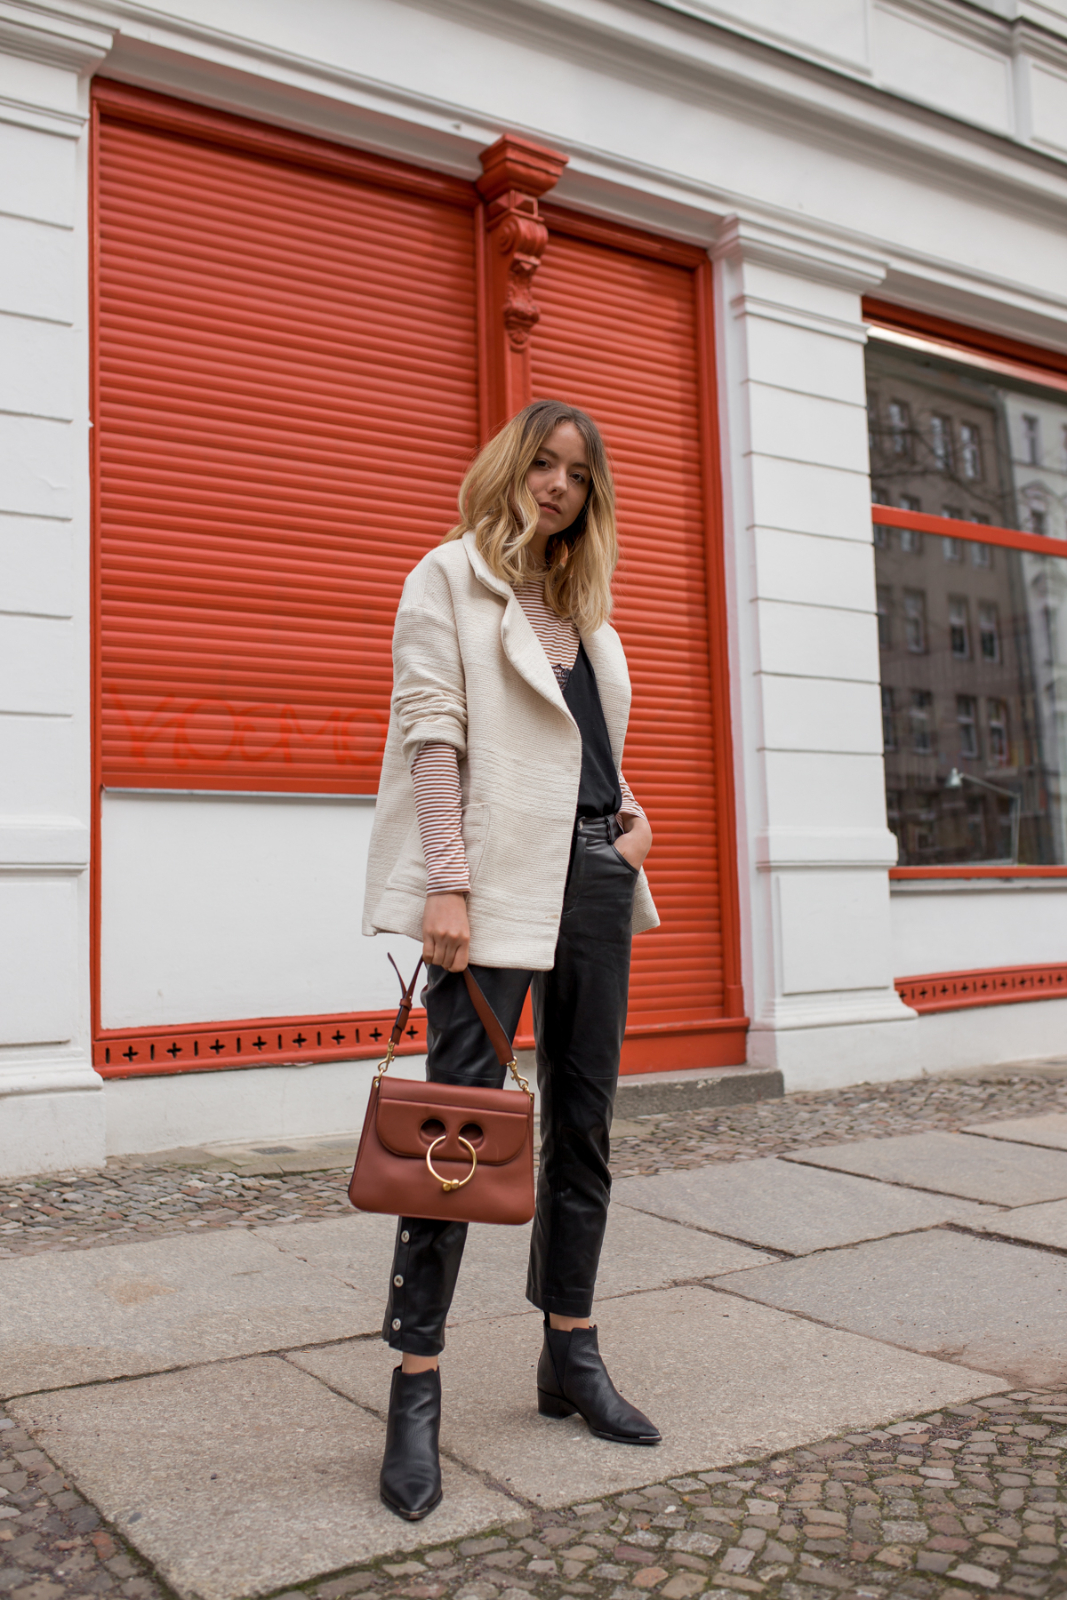 Outfit_The-Limits-of-Control-Fashion-Fashionblogger-Blogger-Berlin-Deutschland-Modeblog-Modeblogger